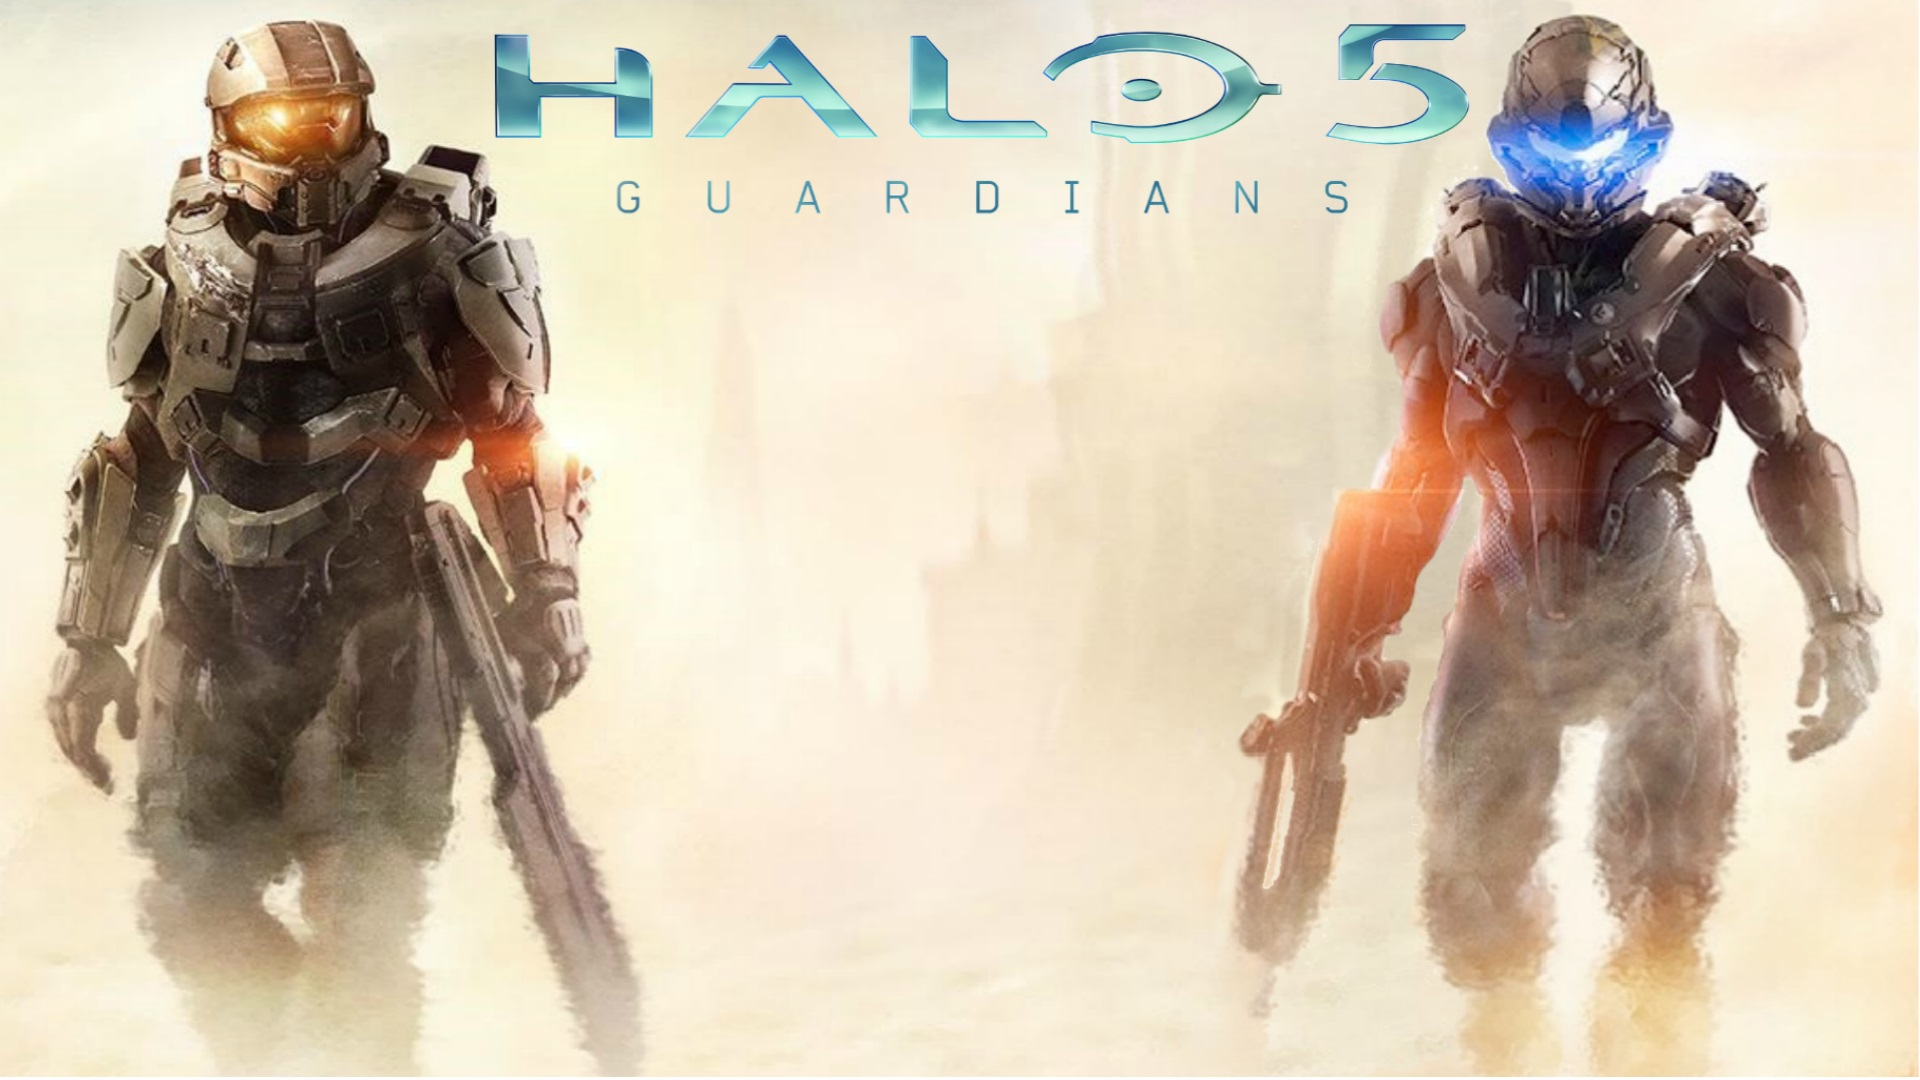 Halo 5 Guardians wallpaper 6